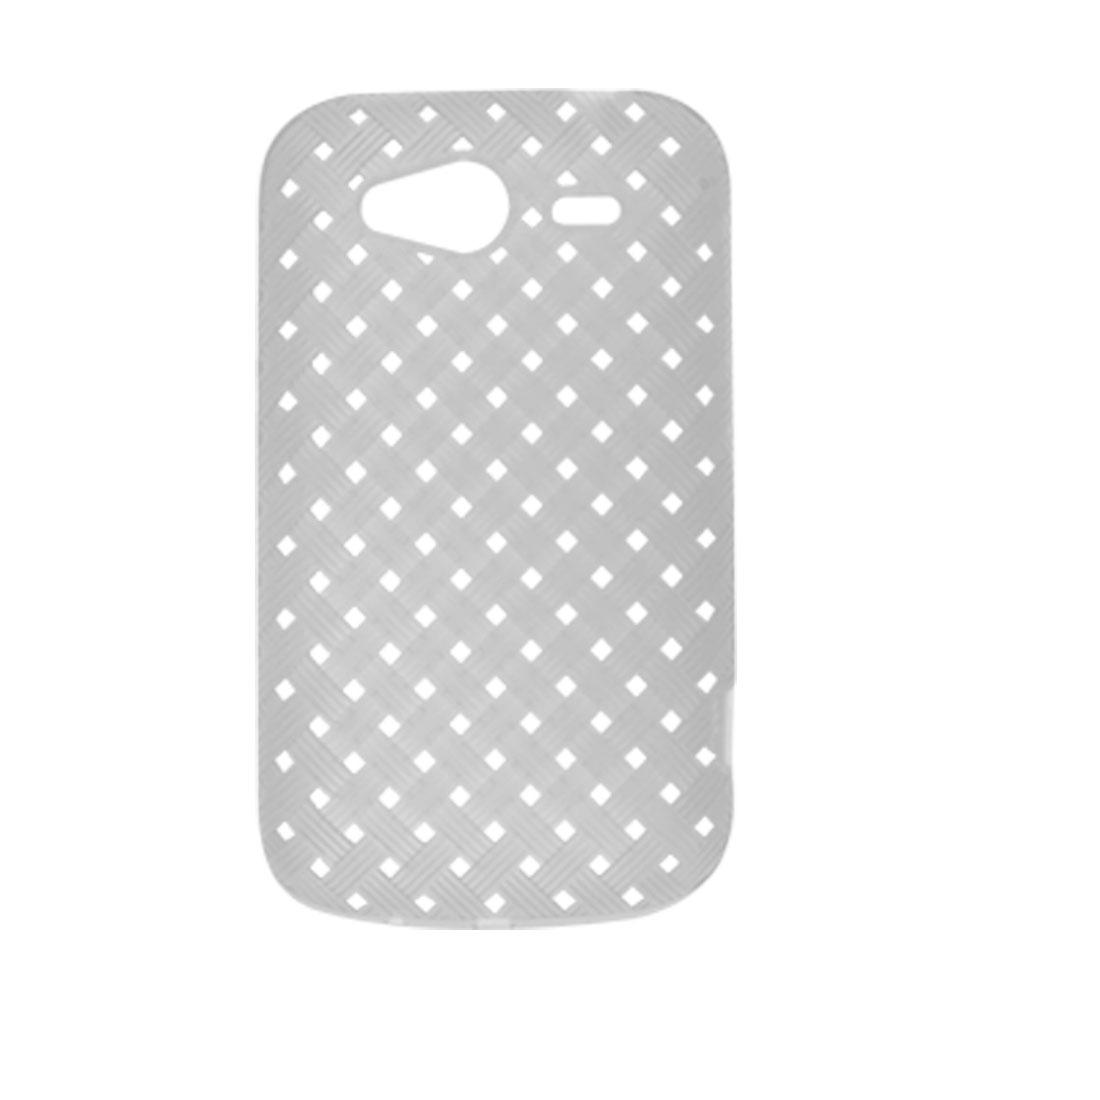 White Woven Rough Square Holes Pattern Cover Shell for for HTC Wildfire S G8S G13